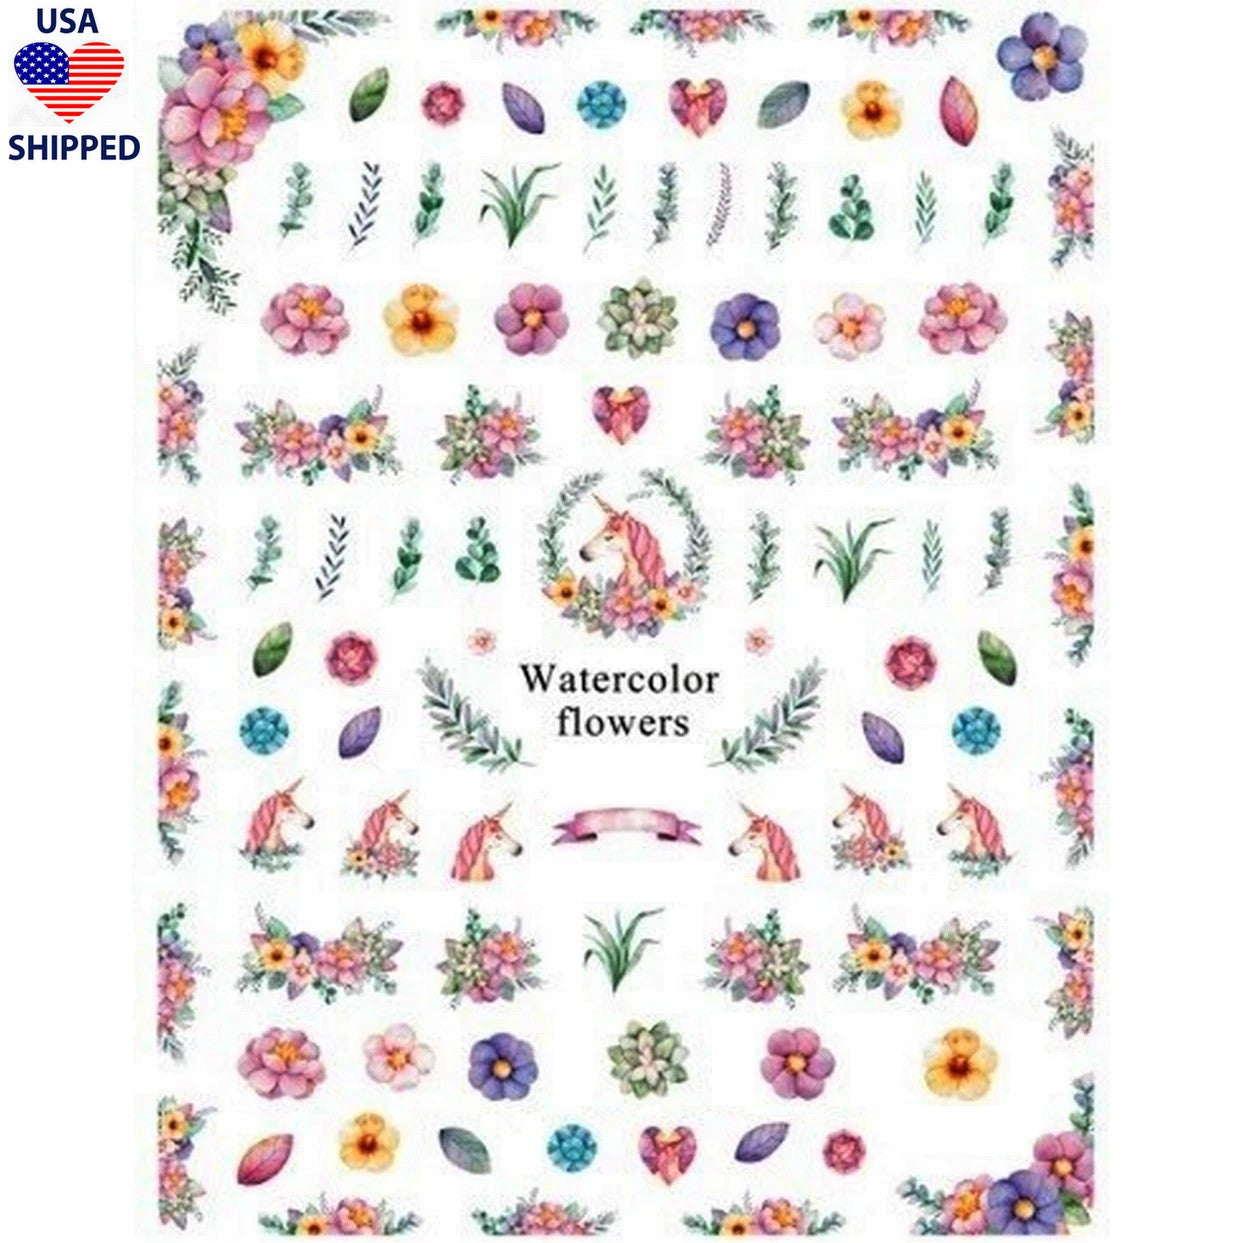 (USA) Floral Mythical Garden Nail Stickers